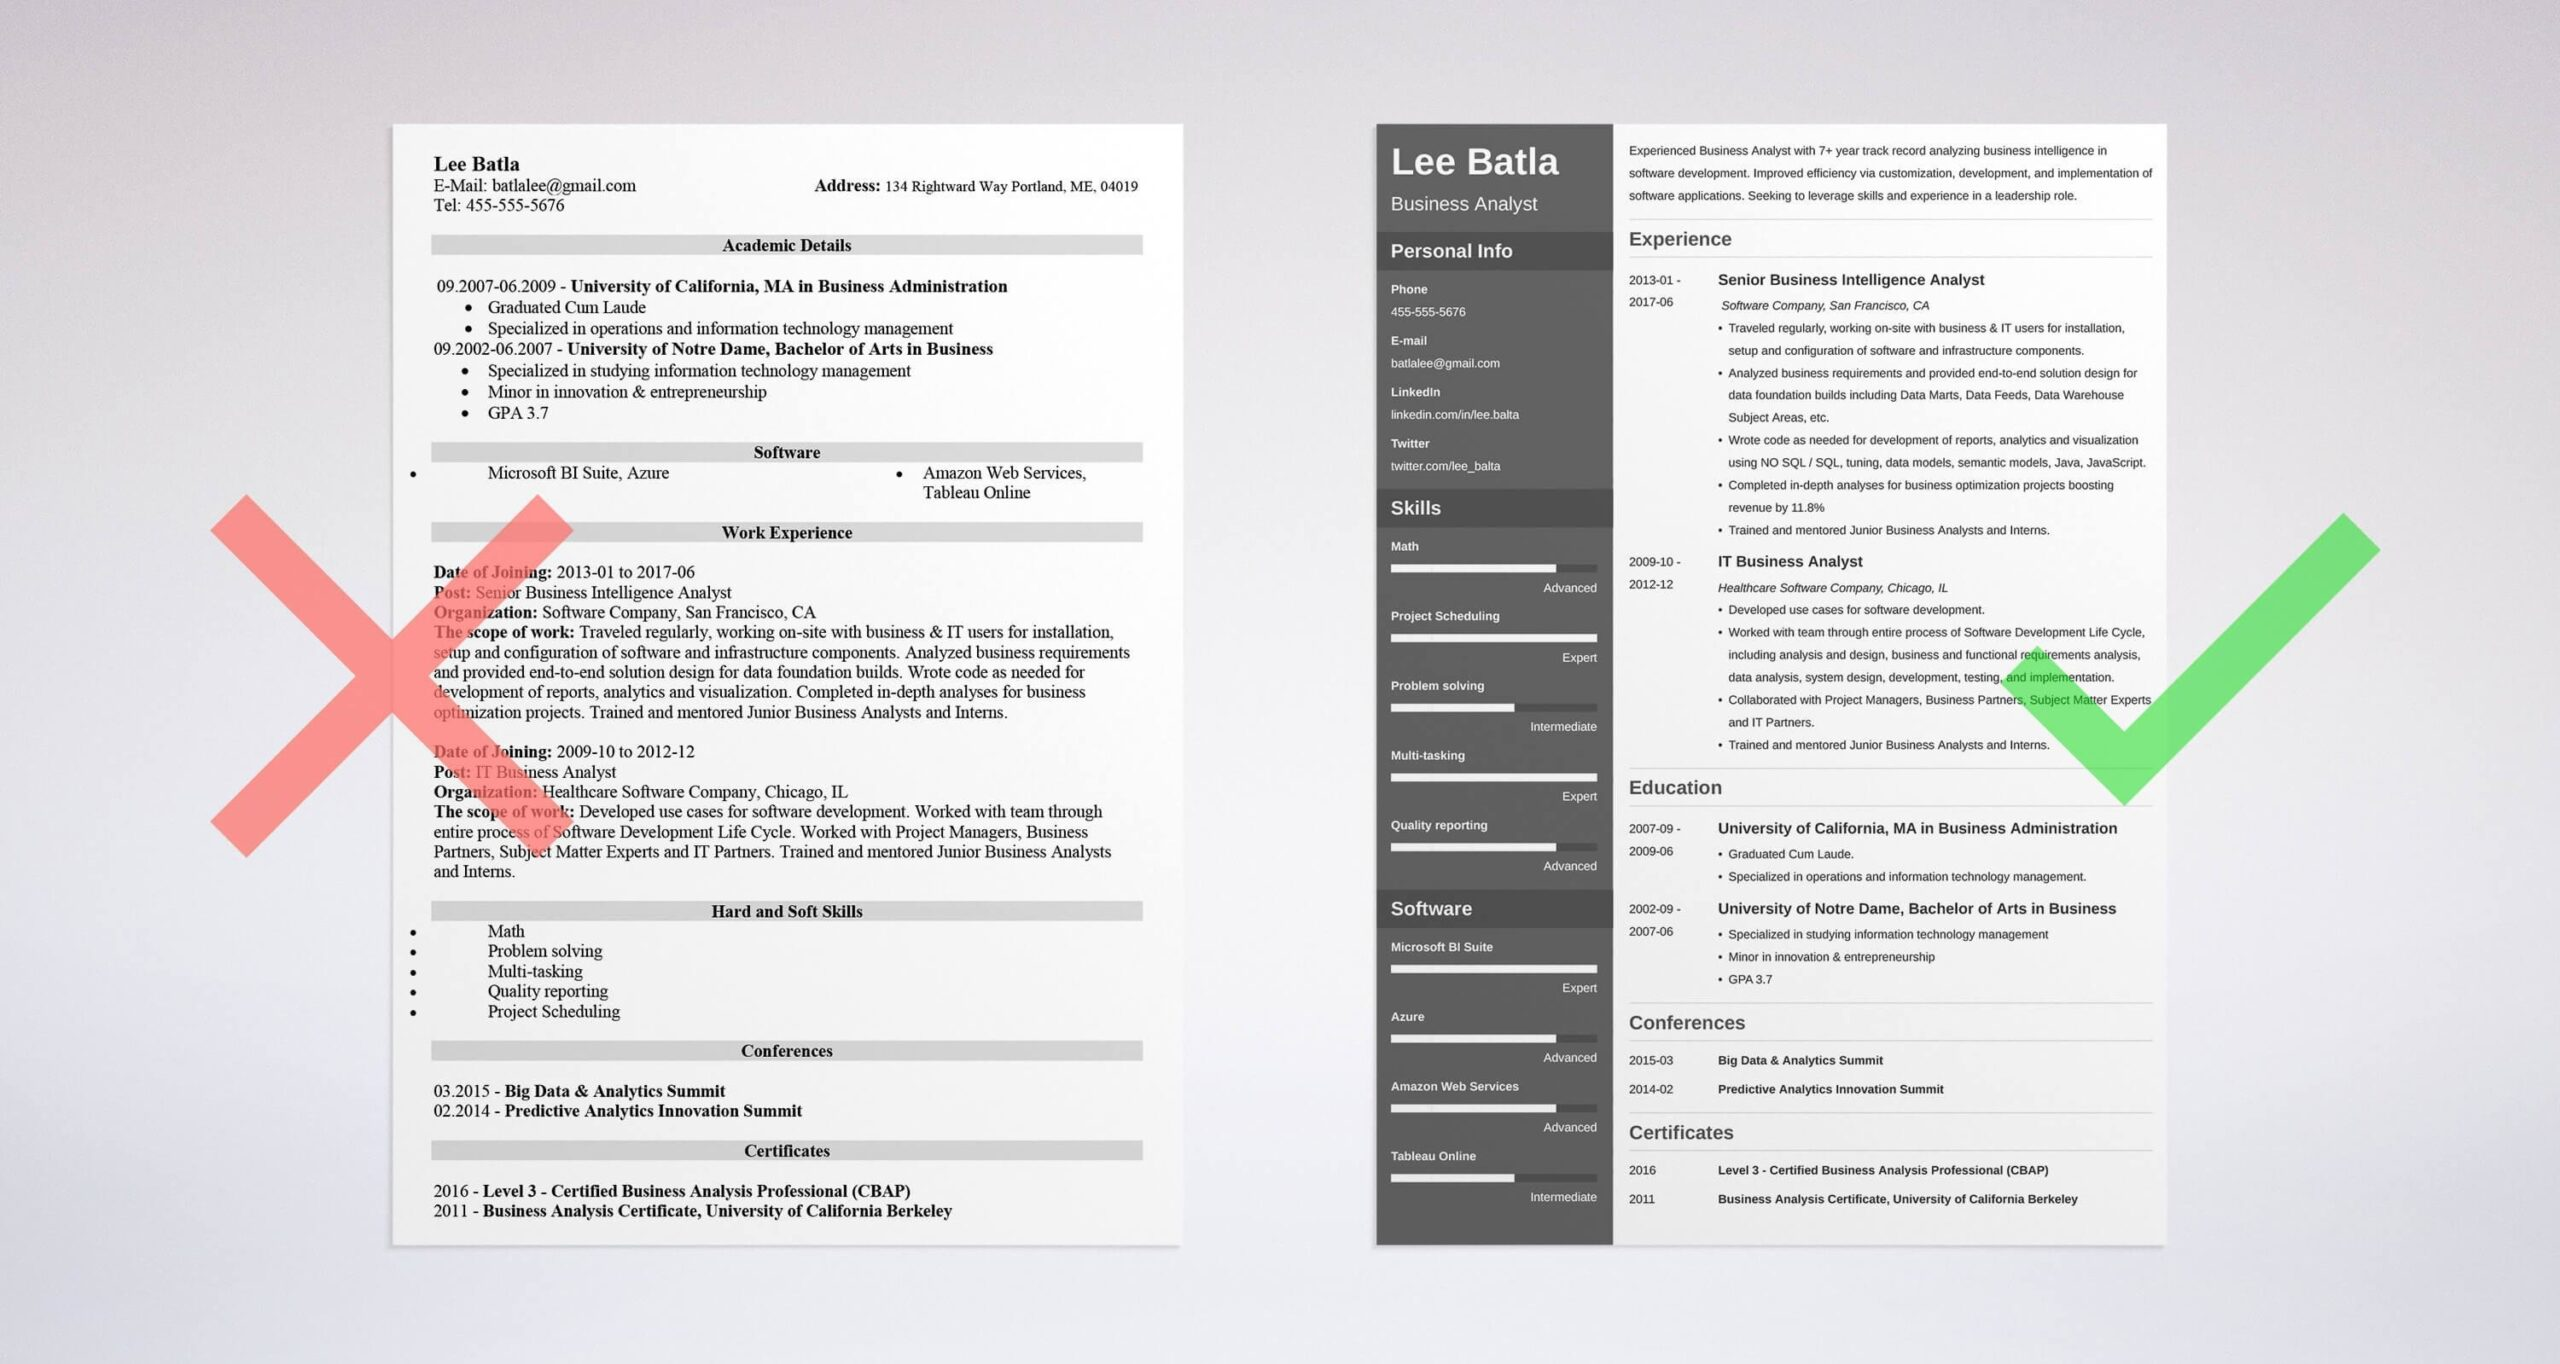 business analyst resume samples summary examples profile for canva builder make teacher Resume Resume Profile Summary For Business Analyst